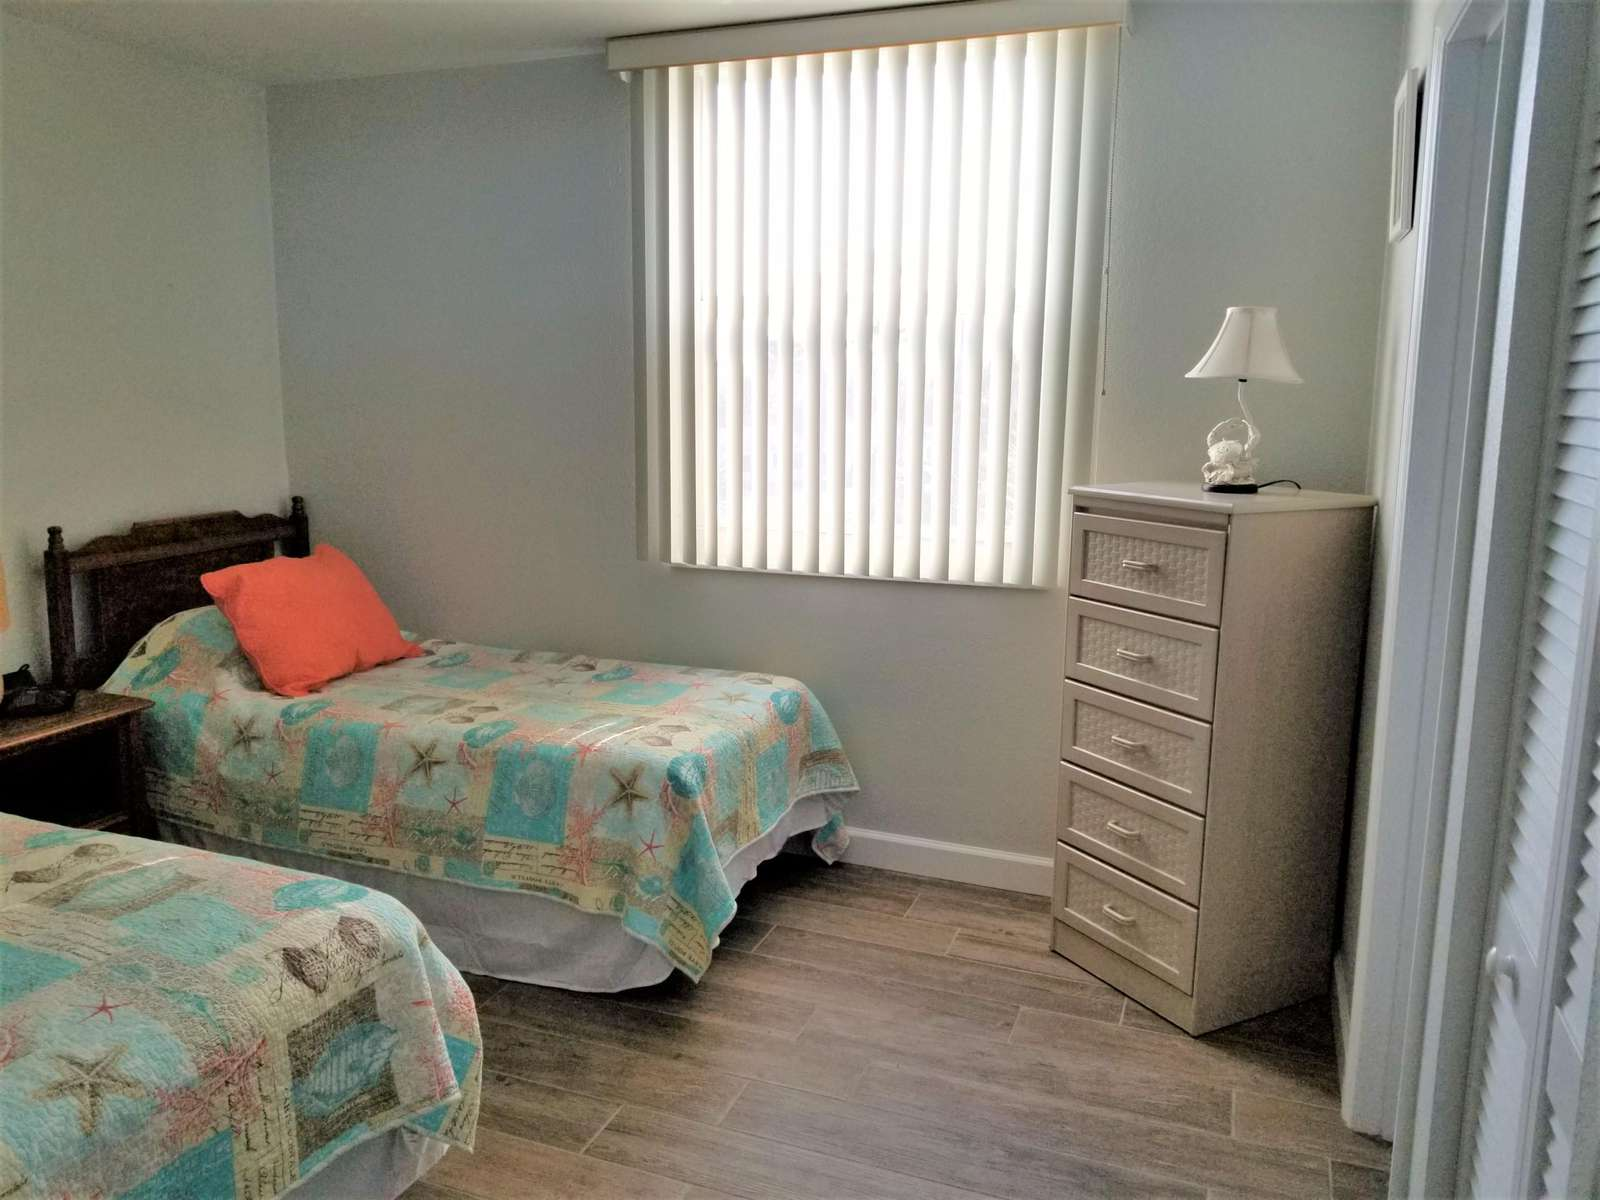 View into guest bedroom